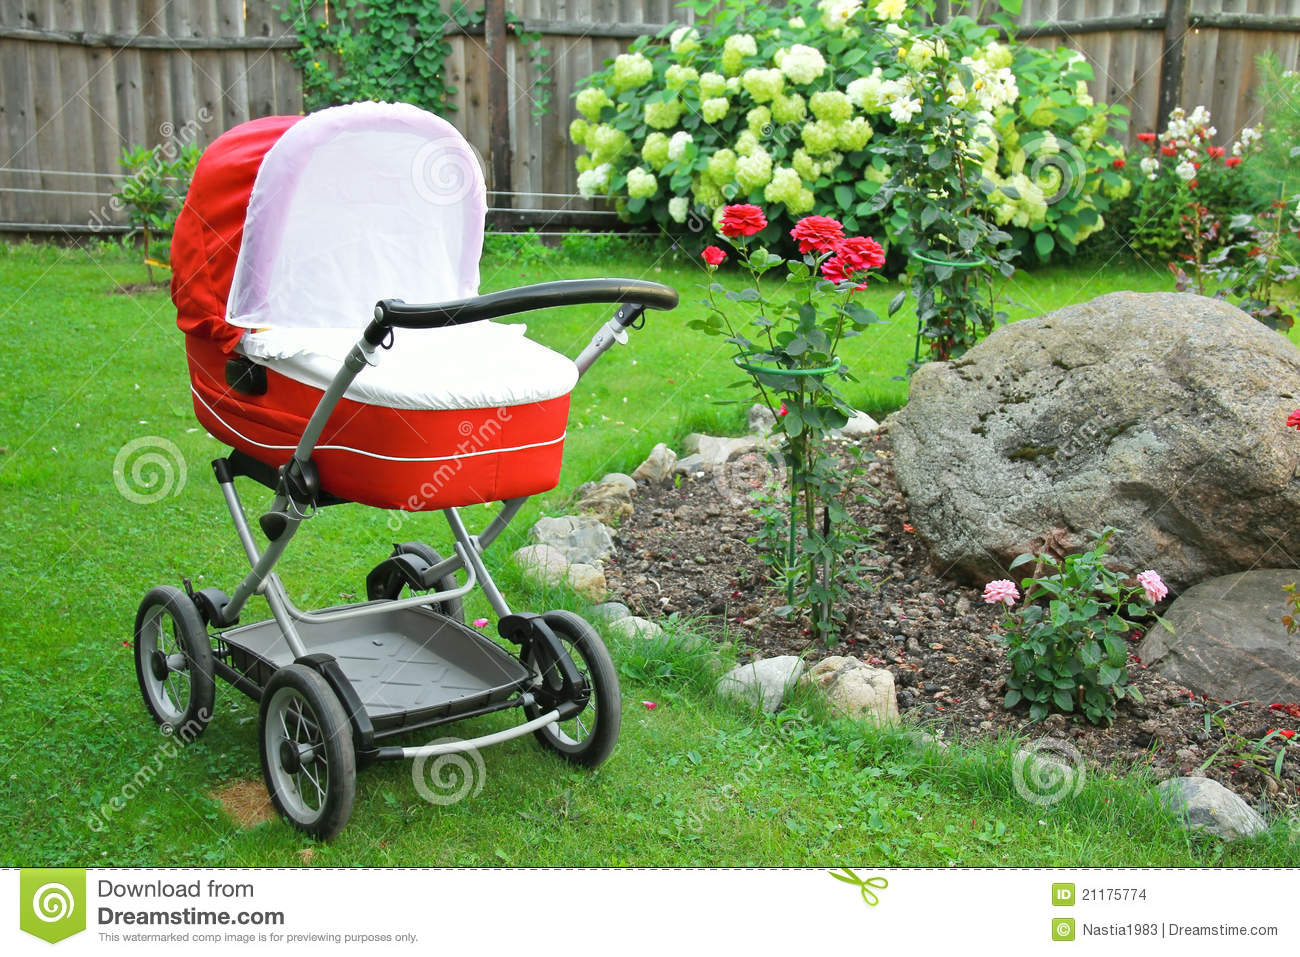 Red baby stroller on nature in park